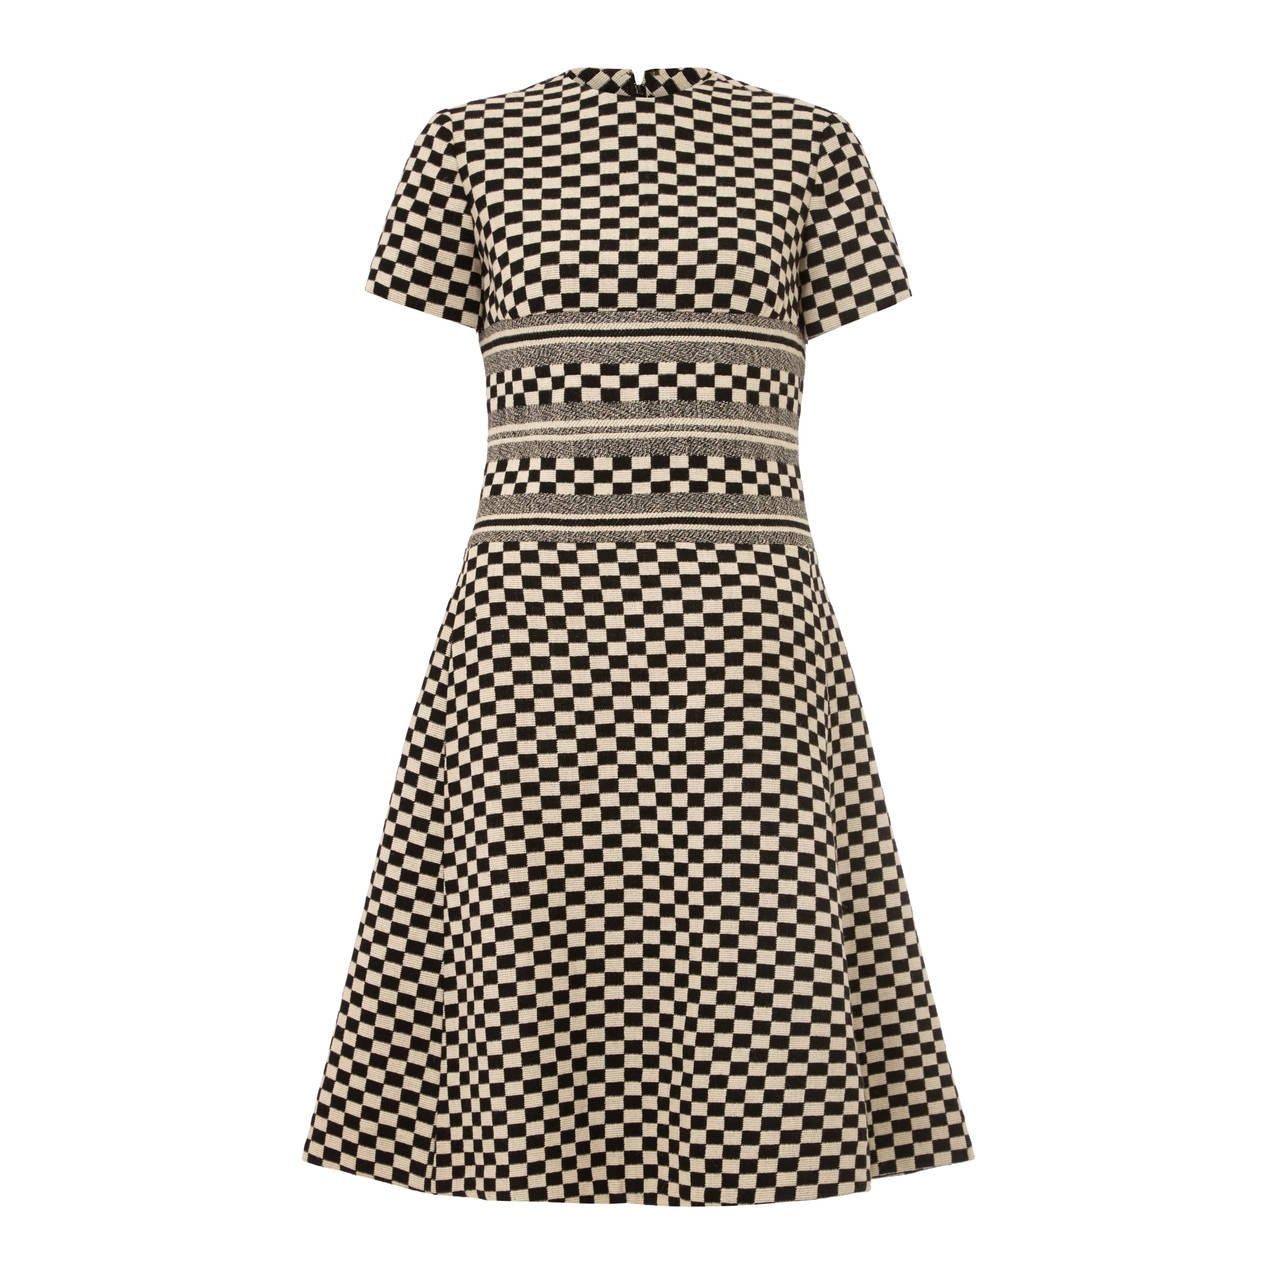 1960s christian dior monochrome checked mod dress for Dior couture dress price